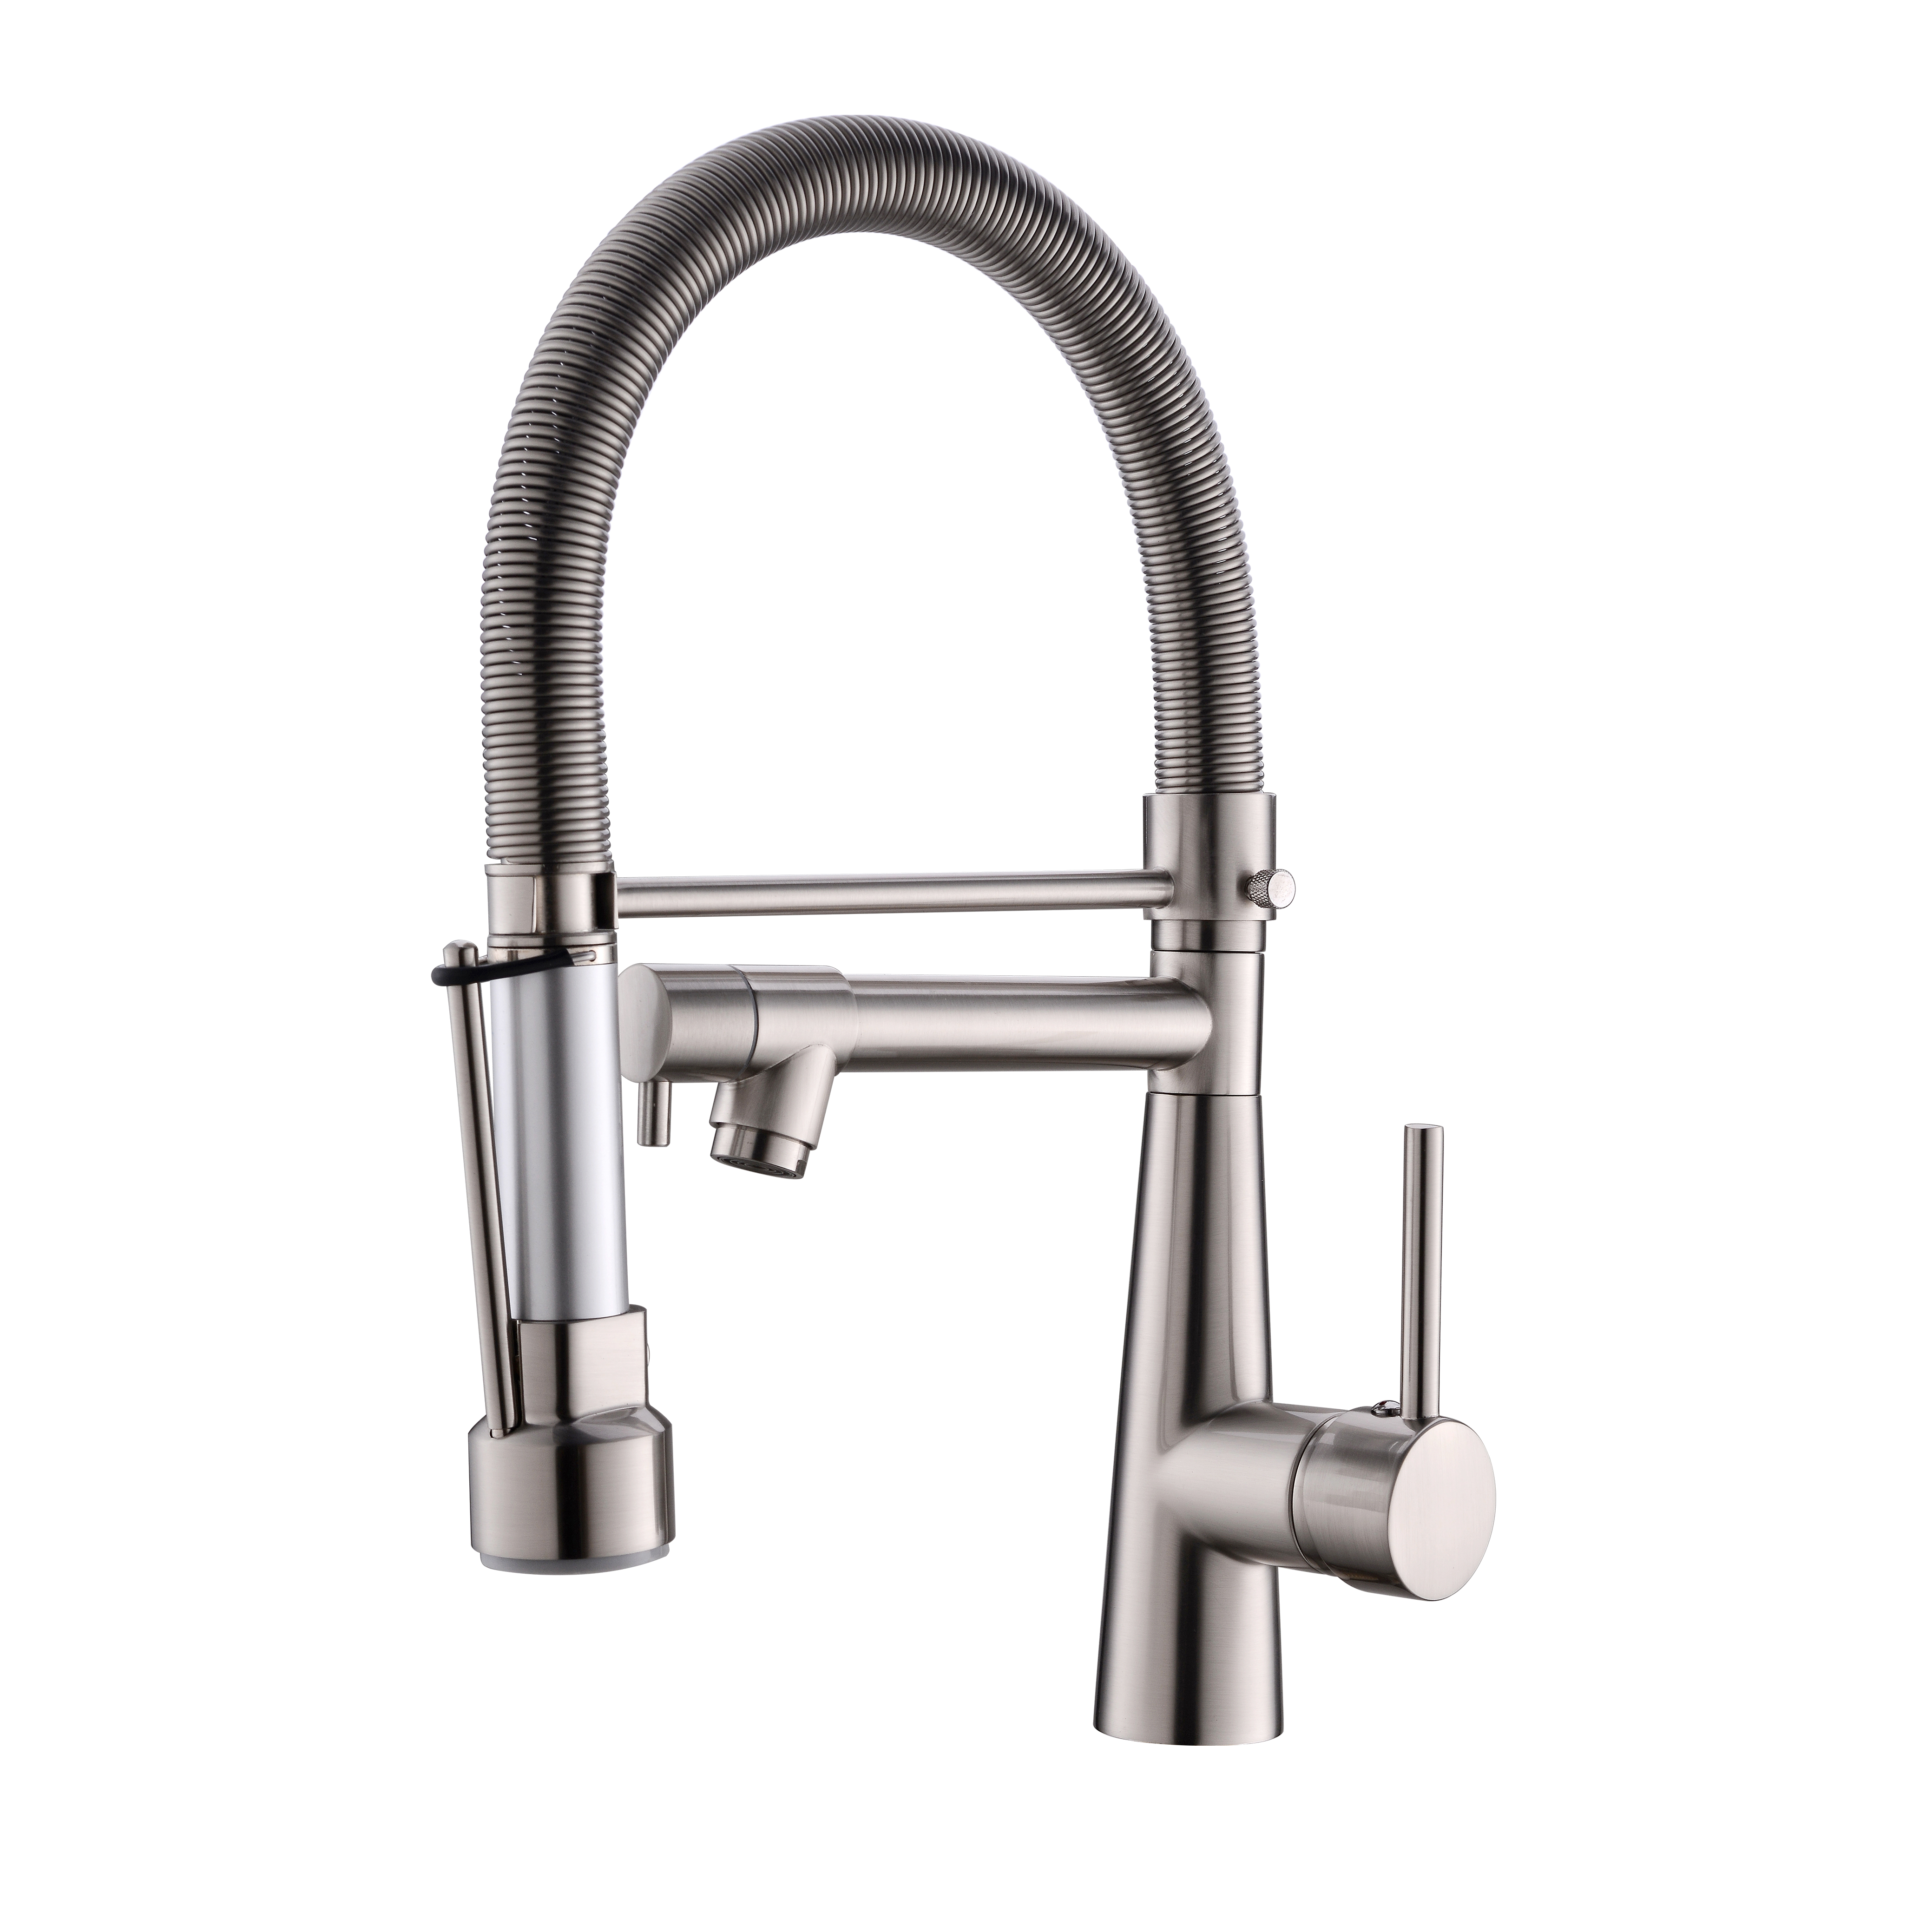 Kitchen Faucets with Pull Down Sprayer,Commercial Single Handle Kitchen Sink Faucet with LED Light,Brushed Nickel